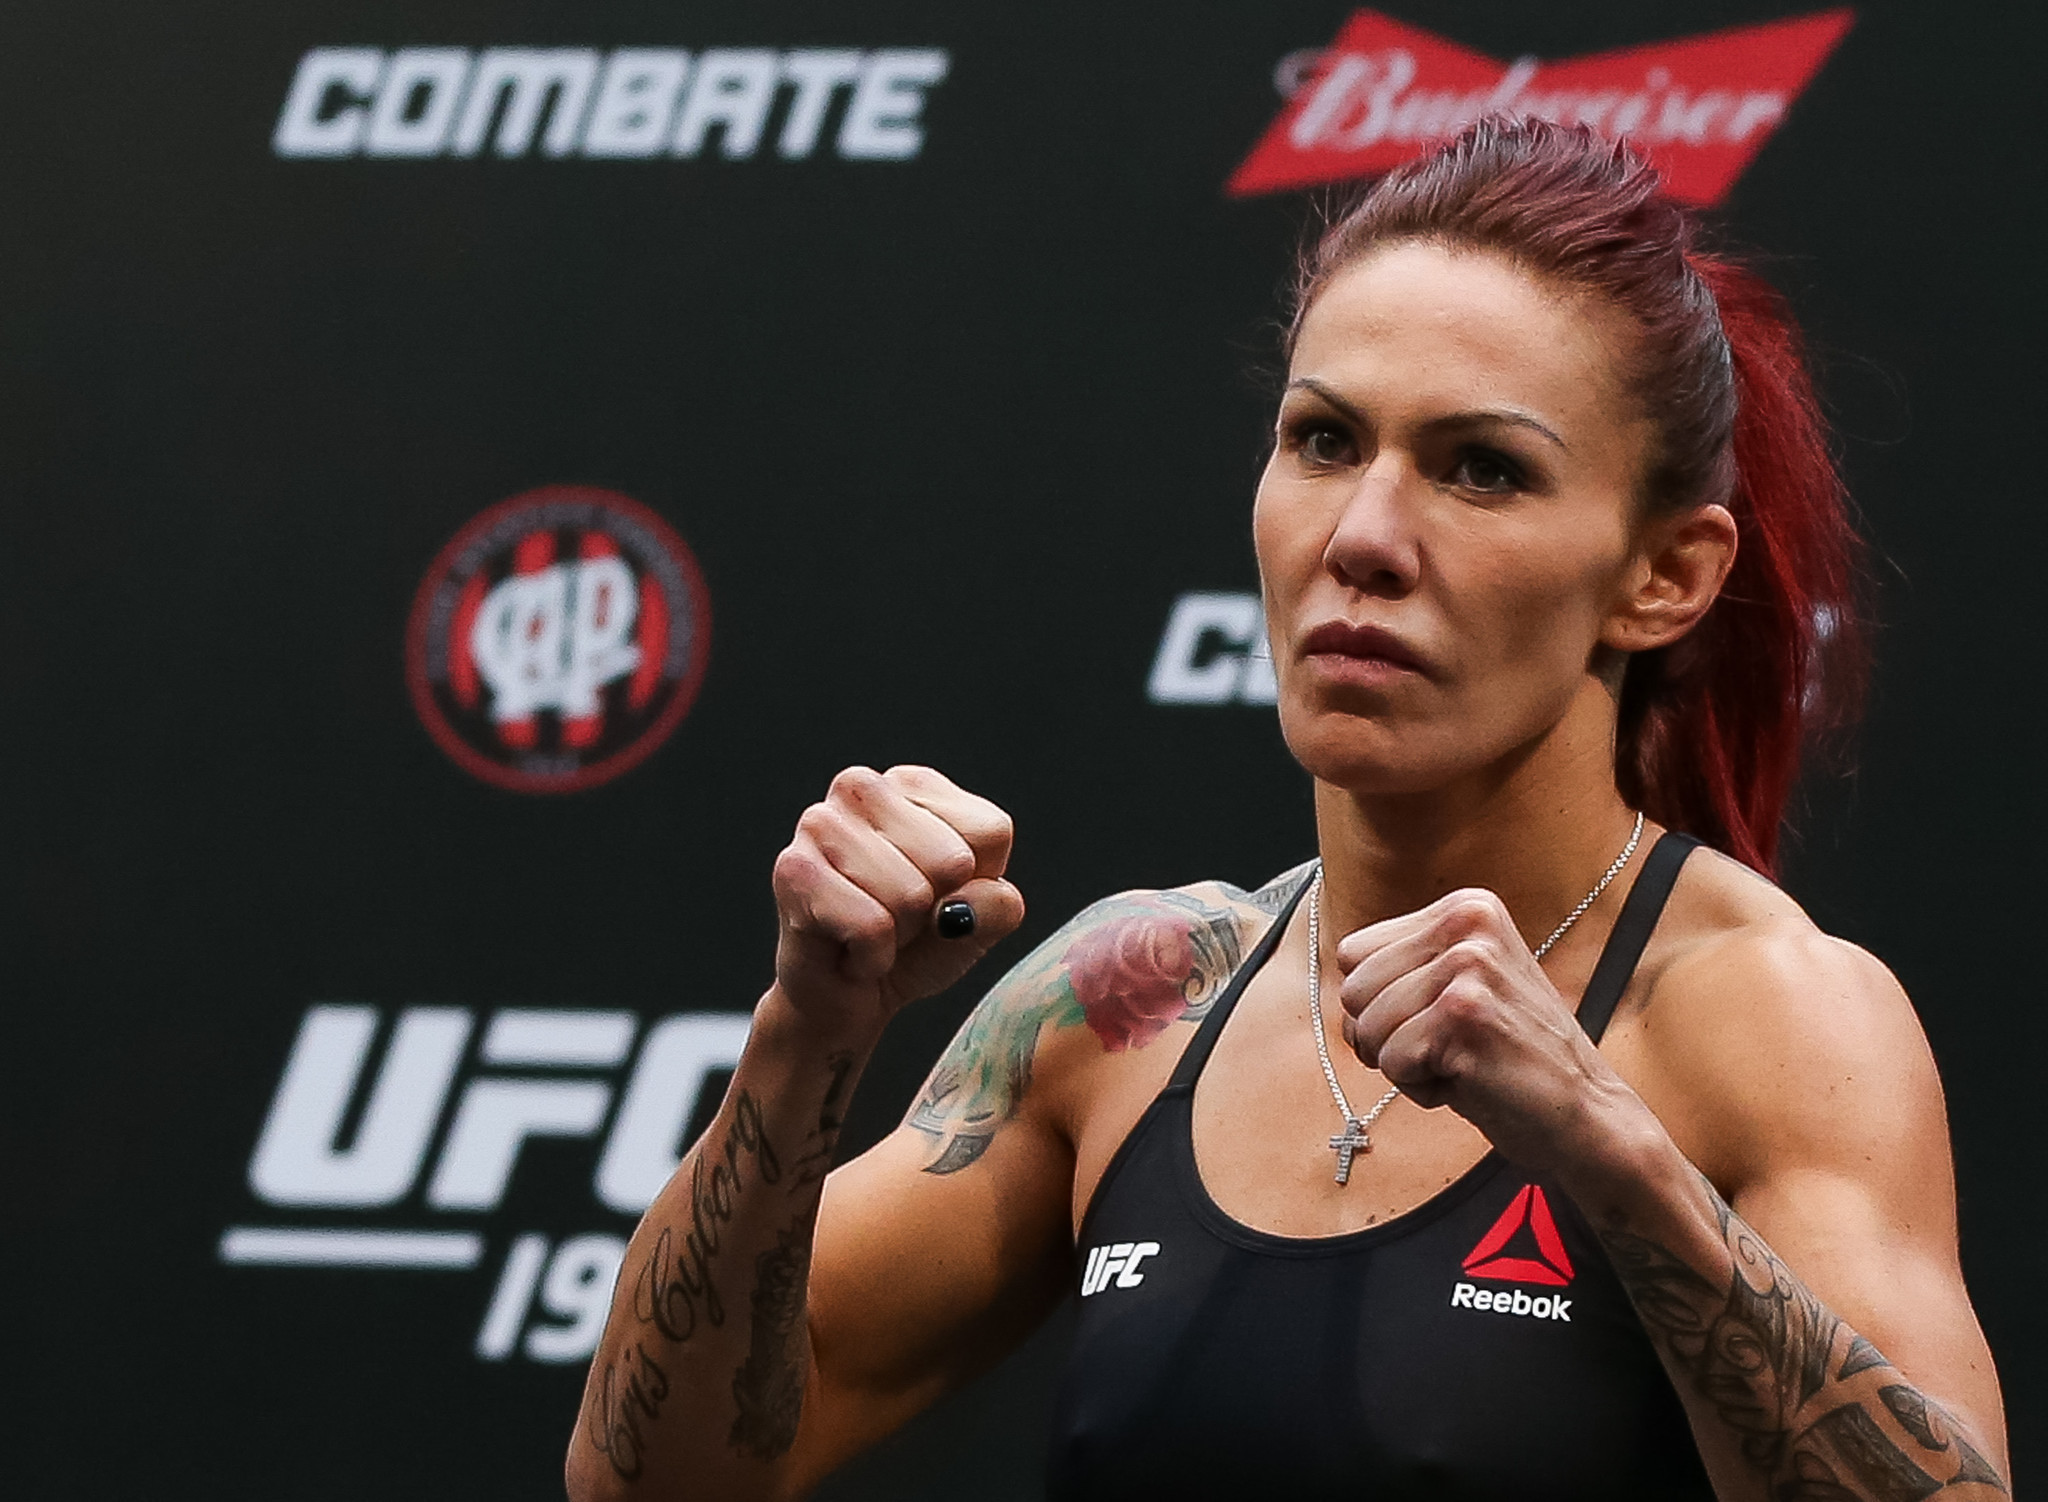 Doping agency clears Cris 'Cyborg' Justino for immediate return to UFC action